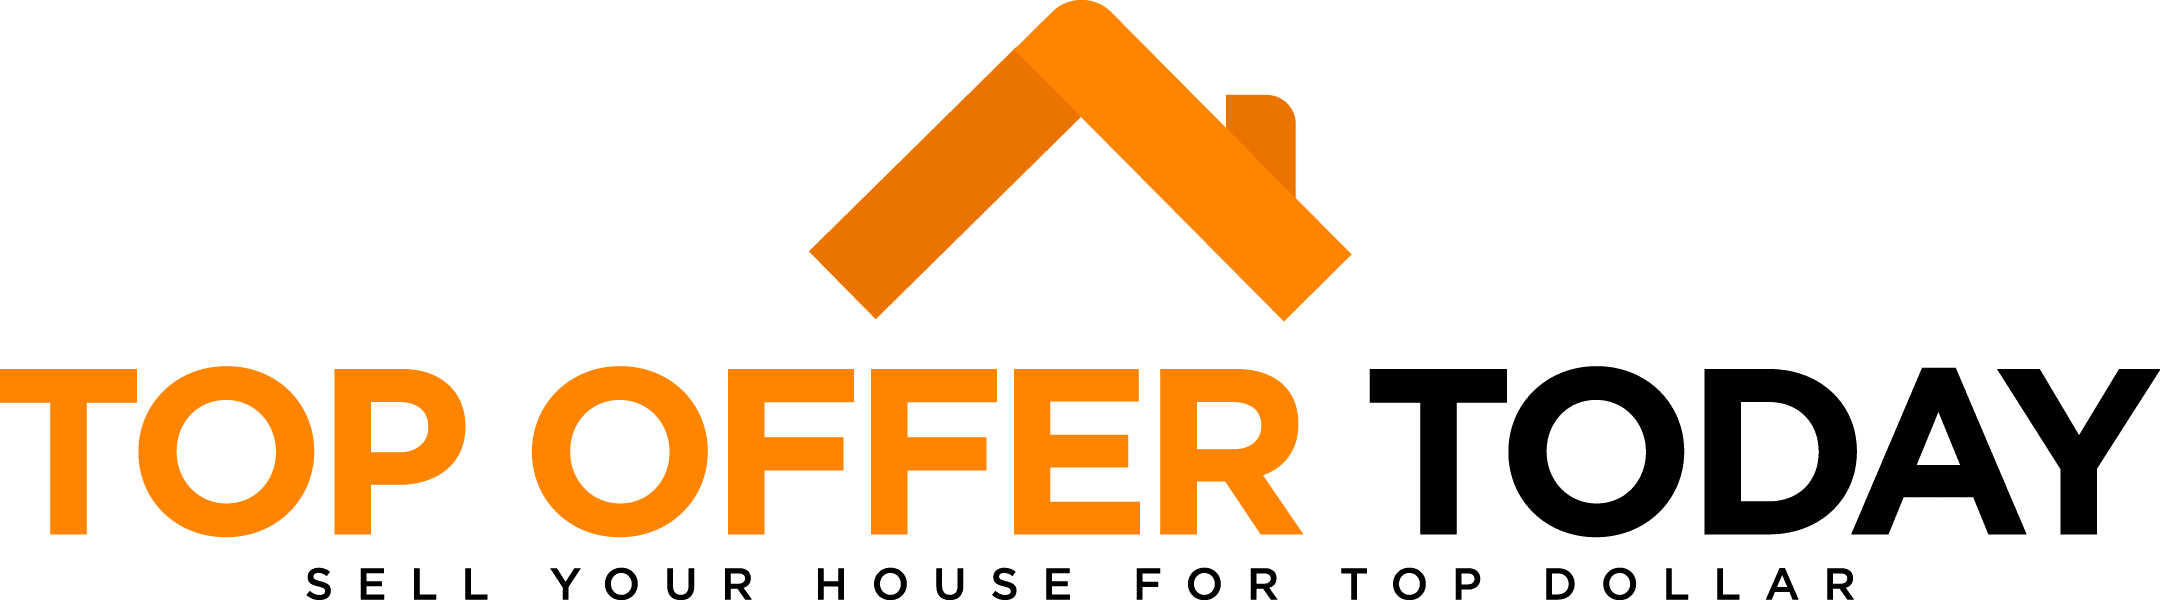 Top-Offer-Today - Sell My House In Bakersfield